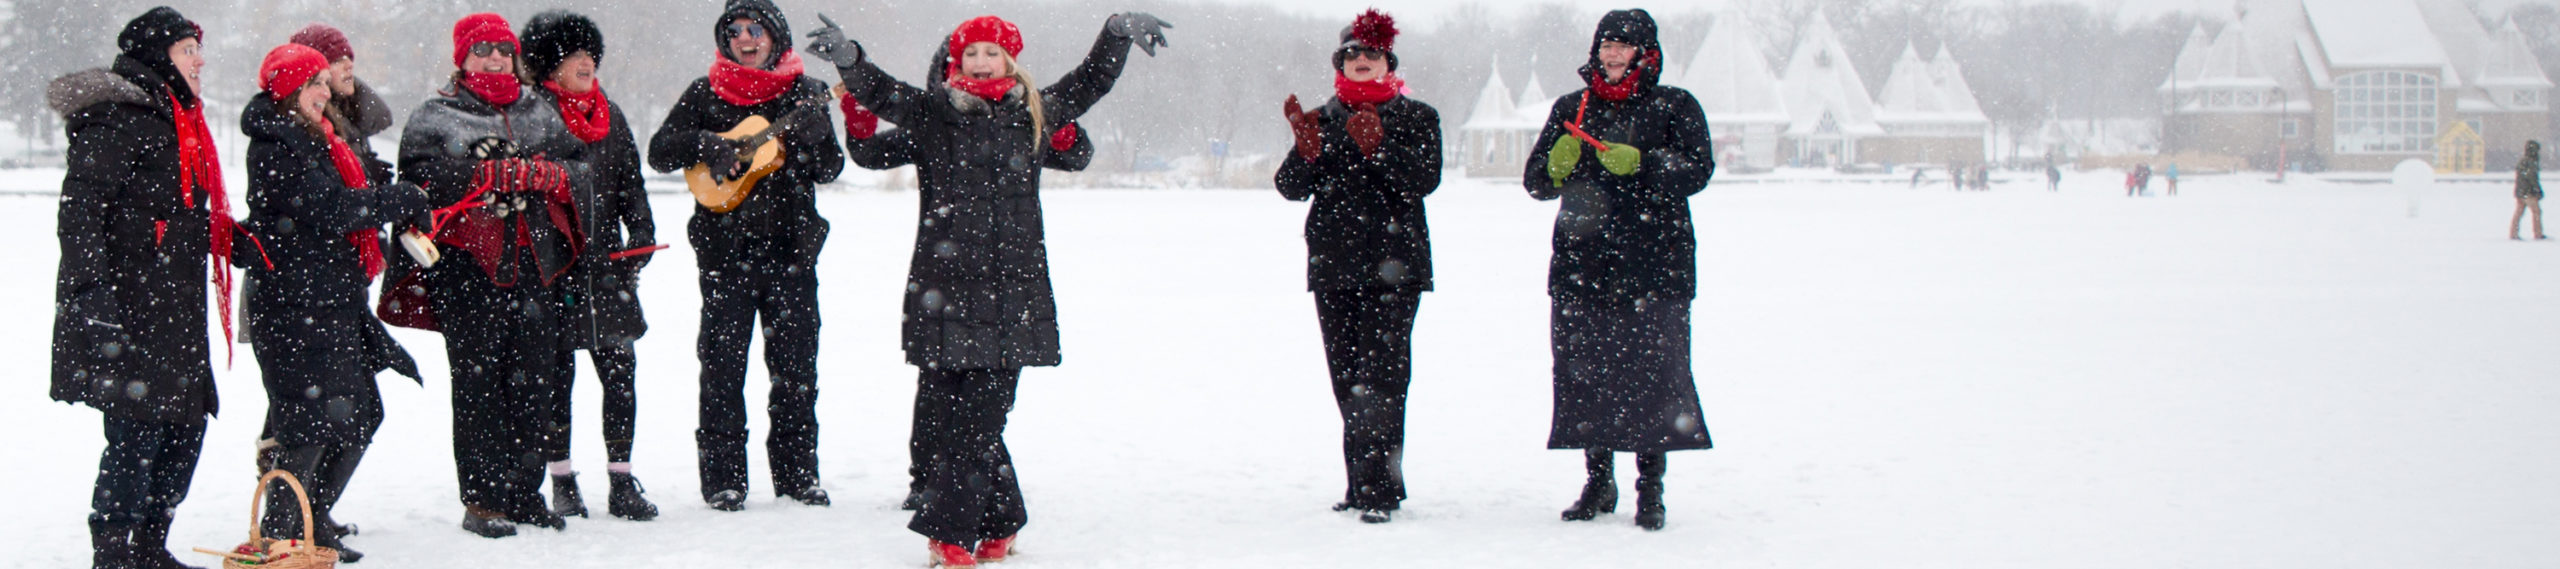 A joyful person in a red beret lifts their arms and sings. They are surrounded by people with red winter accessories with small percussion instruments and a small guitar, all singing merrily.